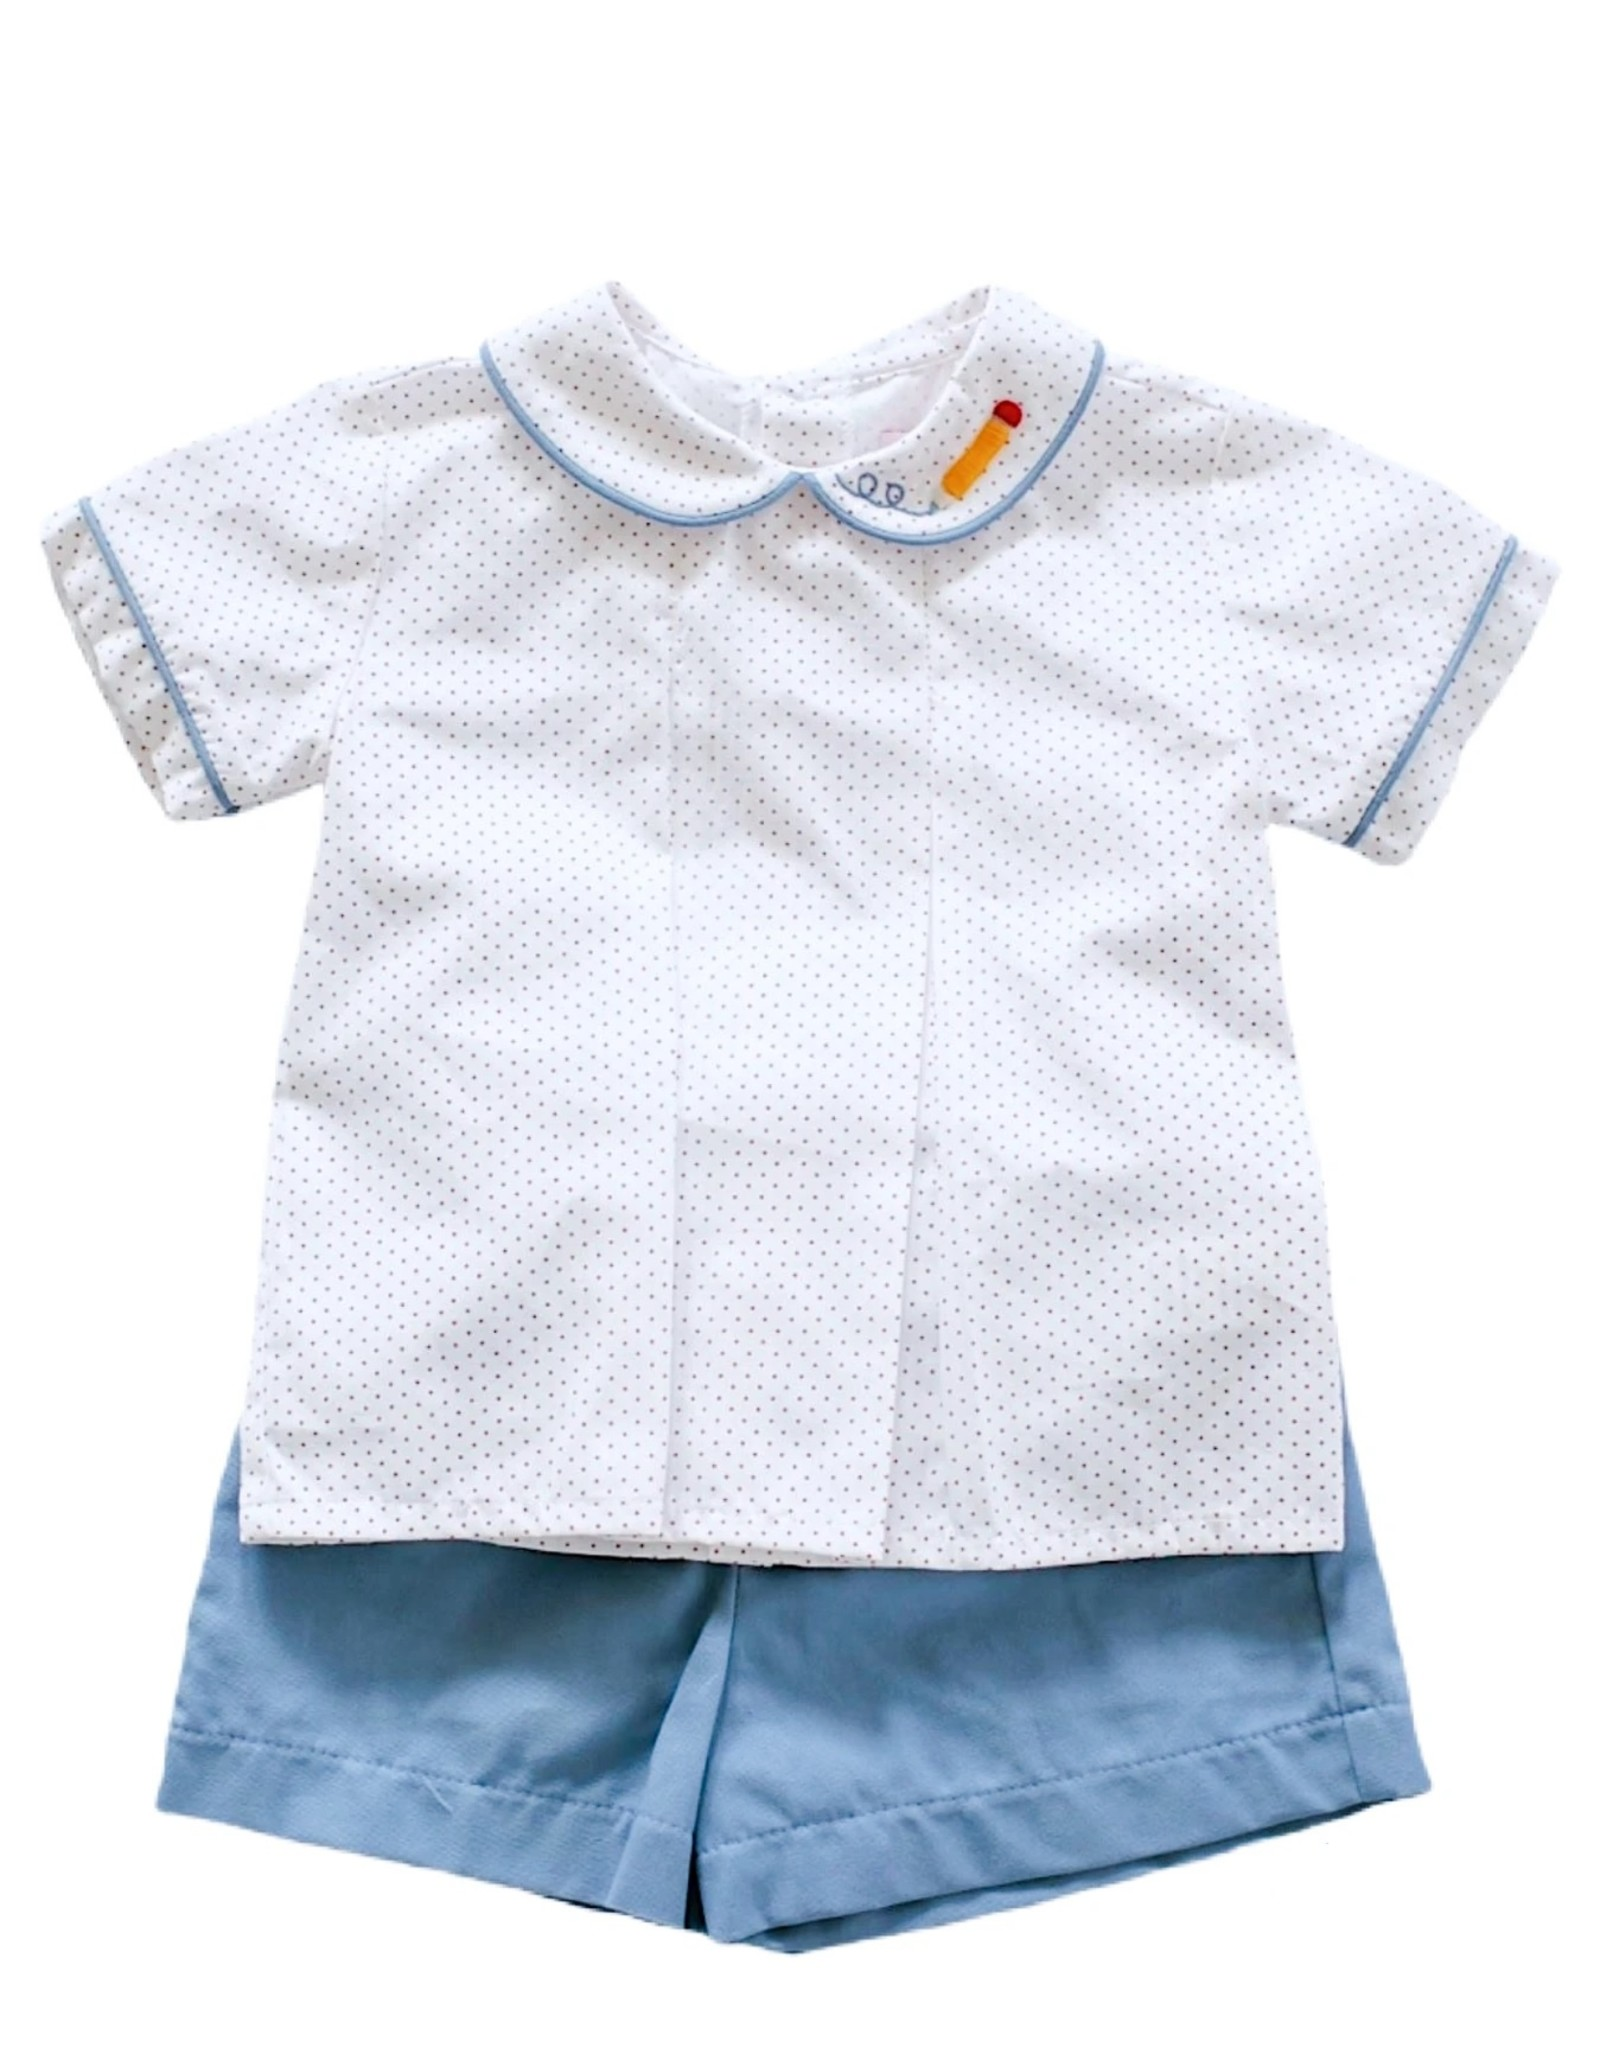 Peggy Green Boys Short Set in Red Micro Dot and Pencil Embroidery